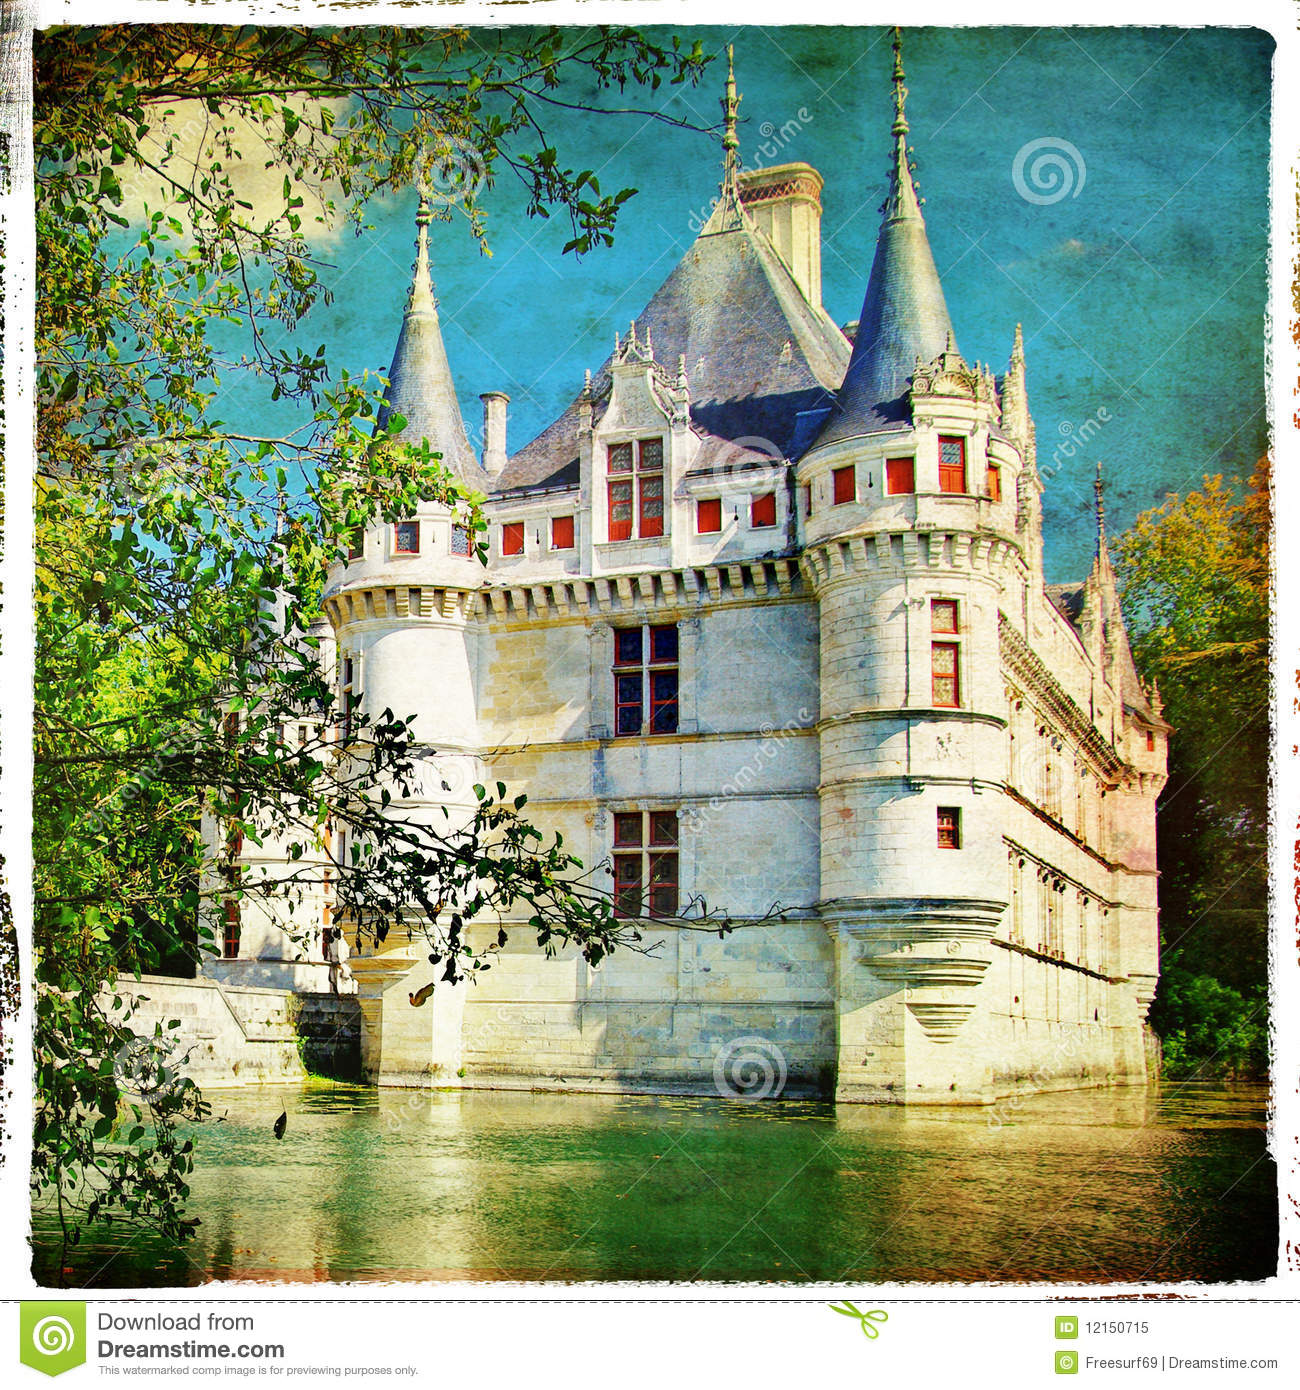 azay le rideau castle royalty free stock photo image. Black Bedroom Furniture Sets. Home Design Ideas